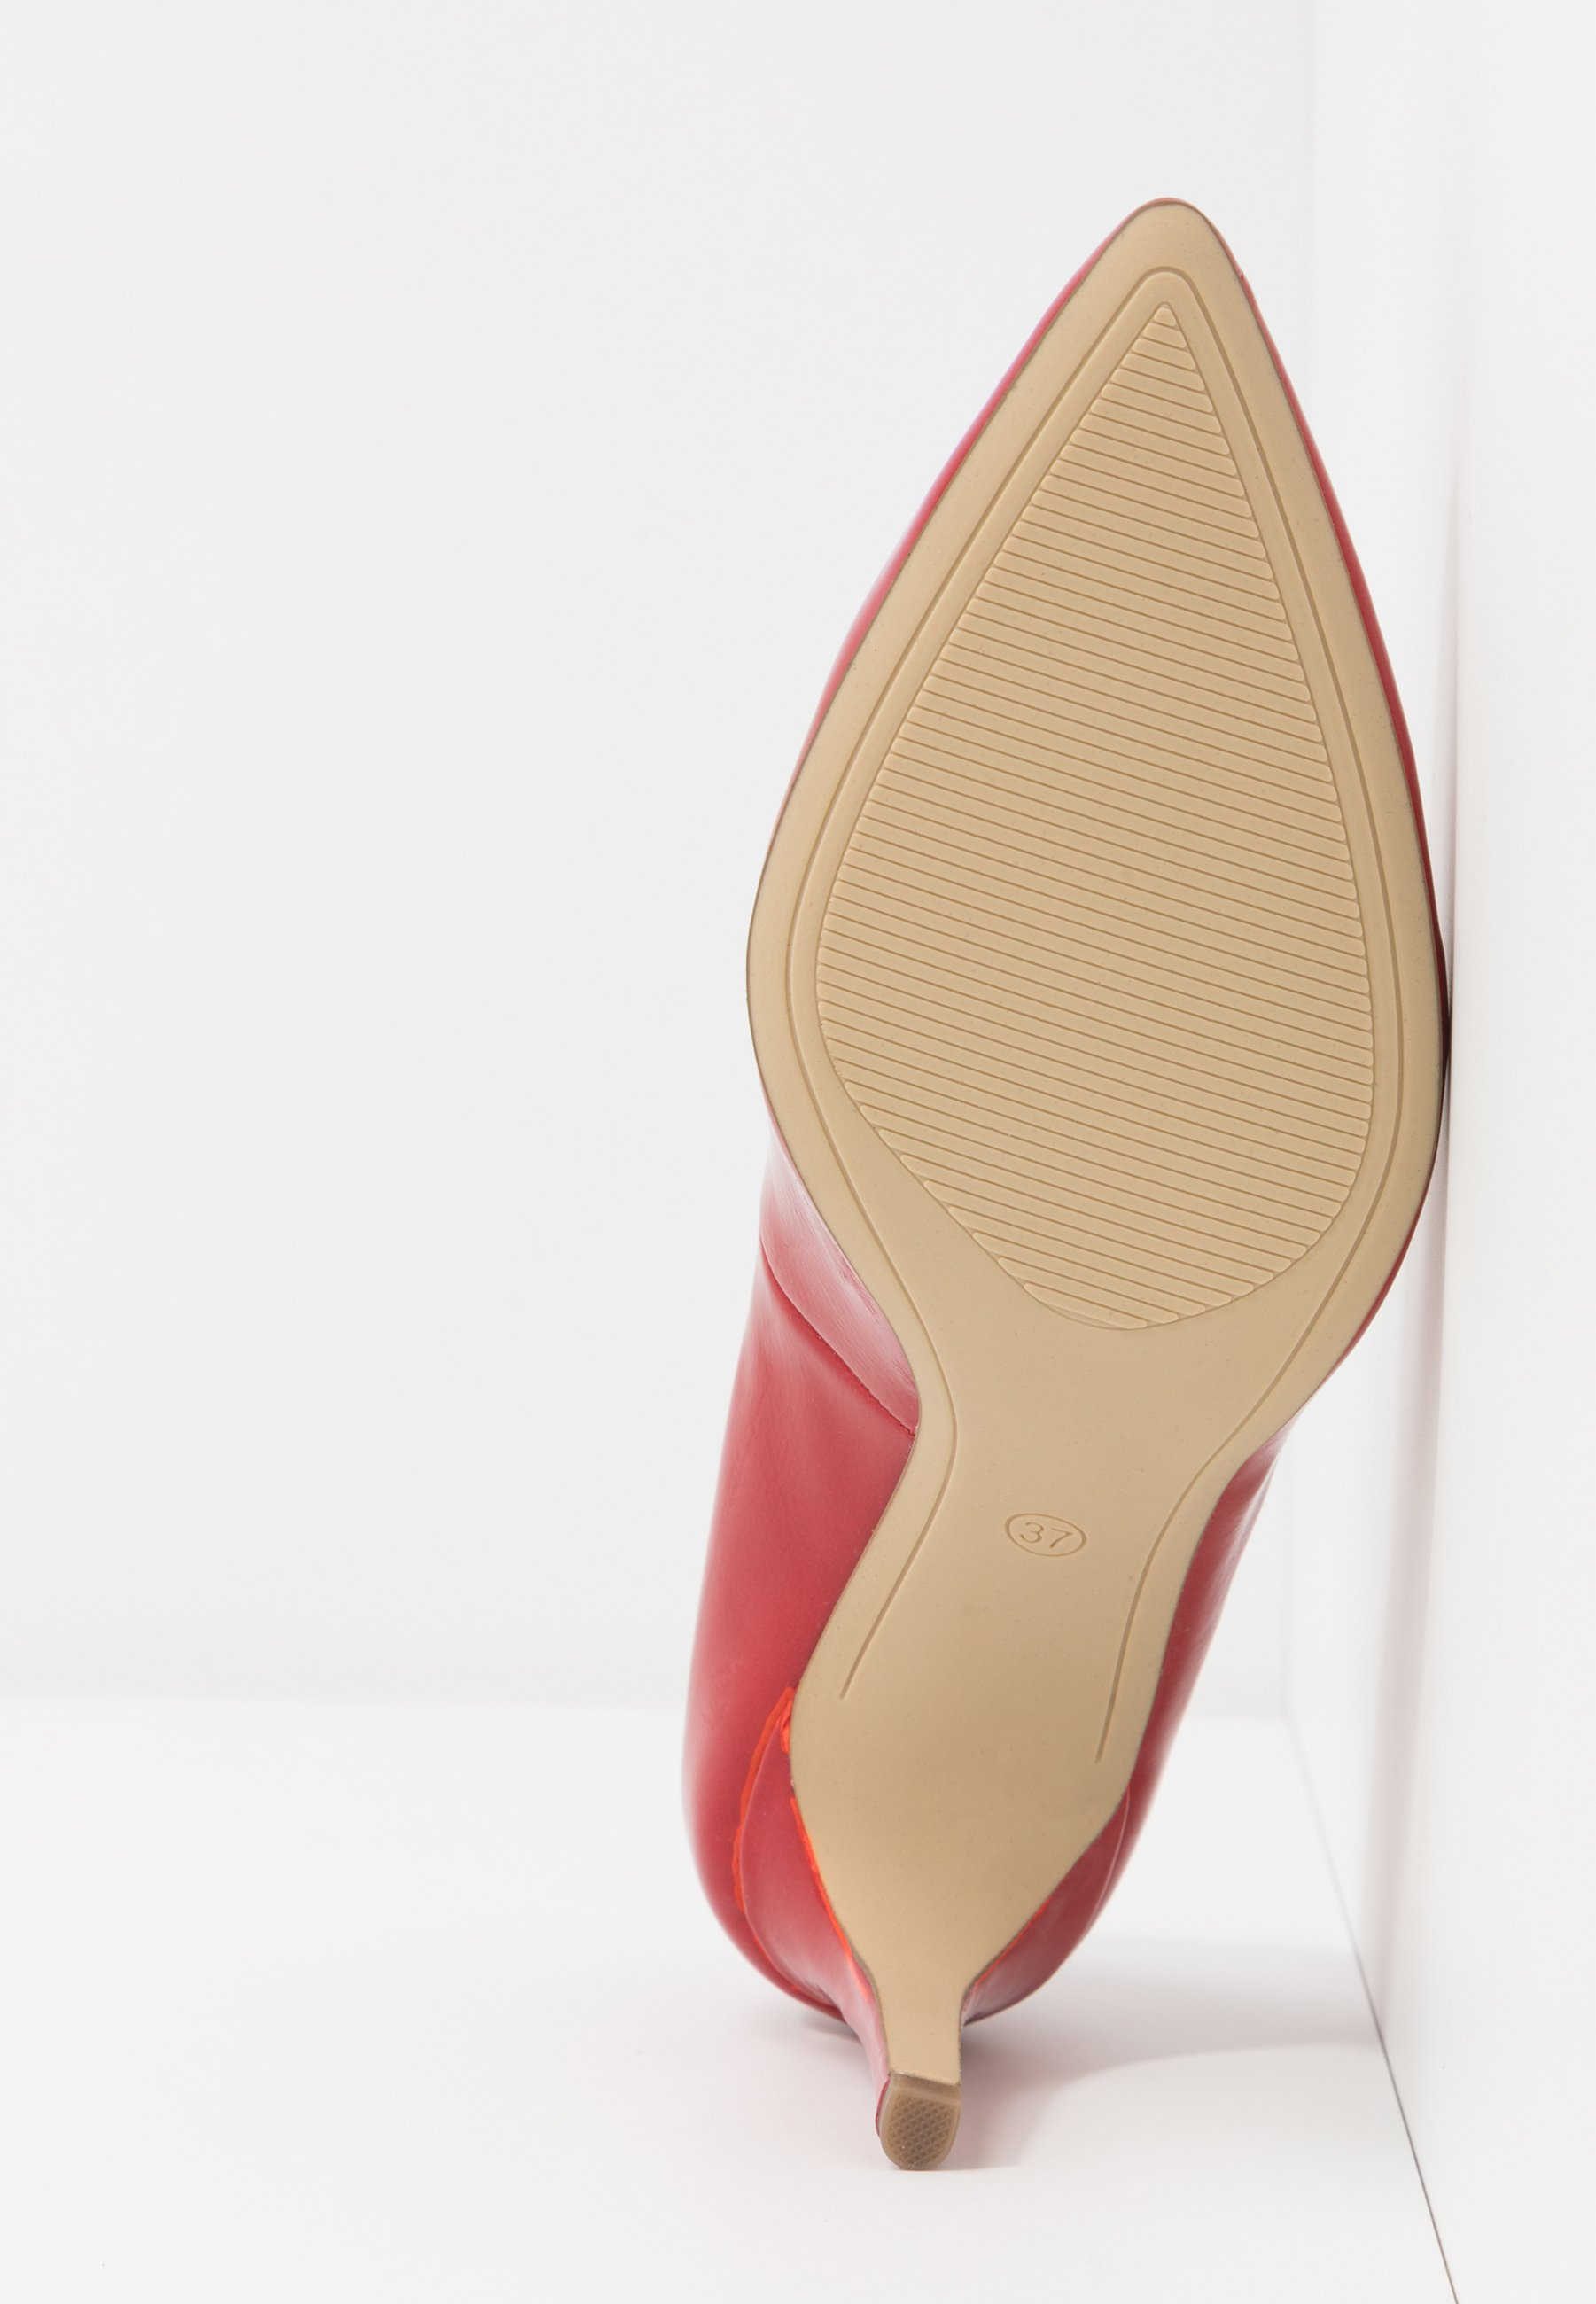 s.Oliver Classic heels - red